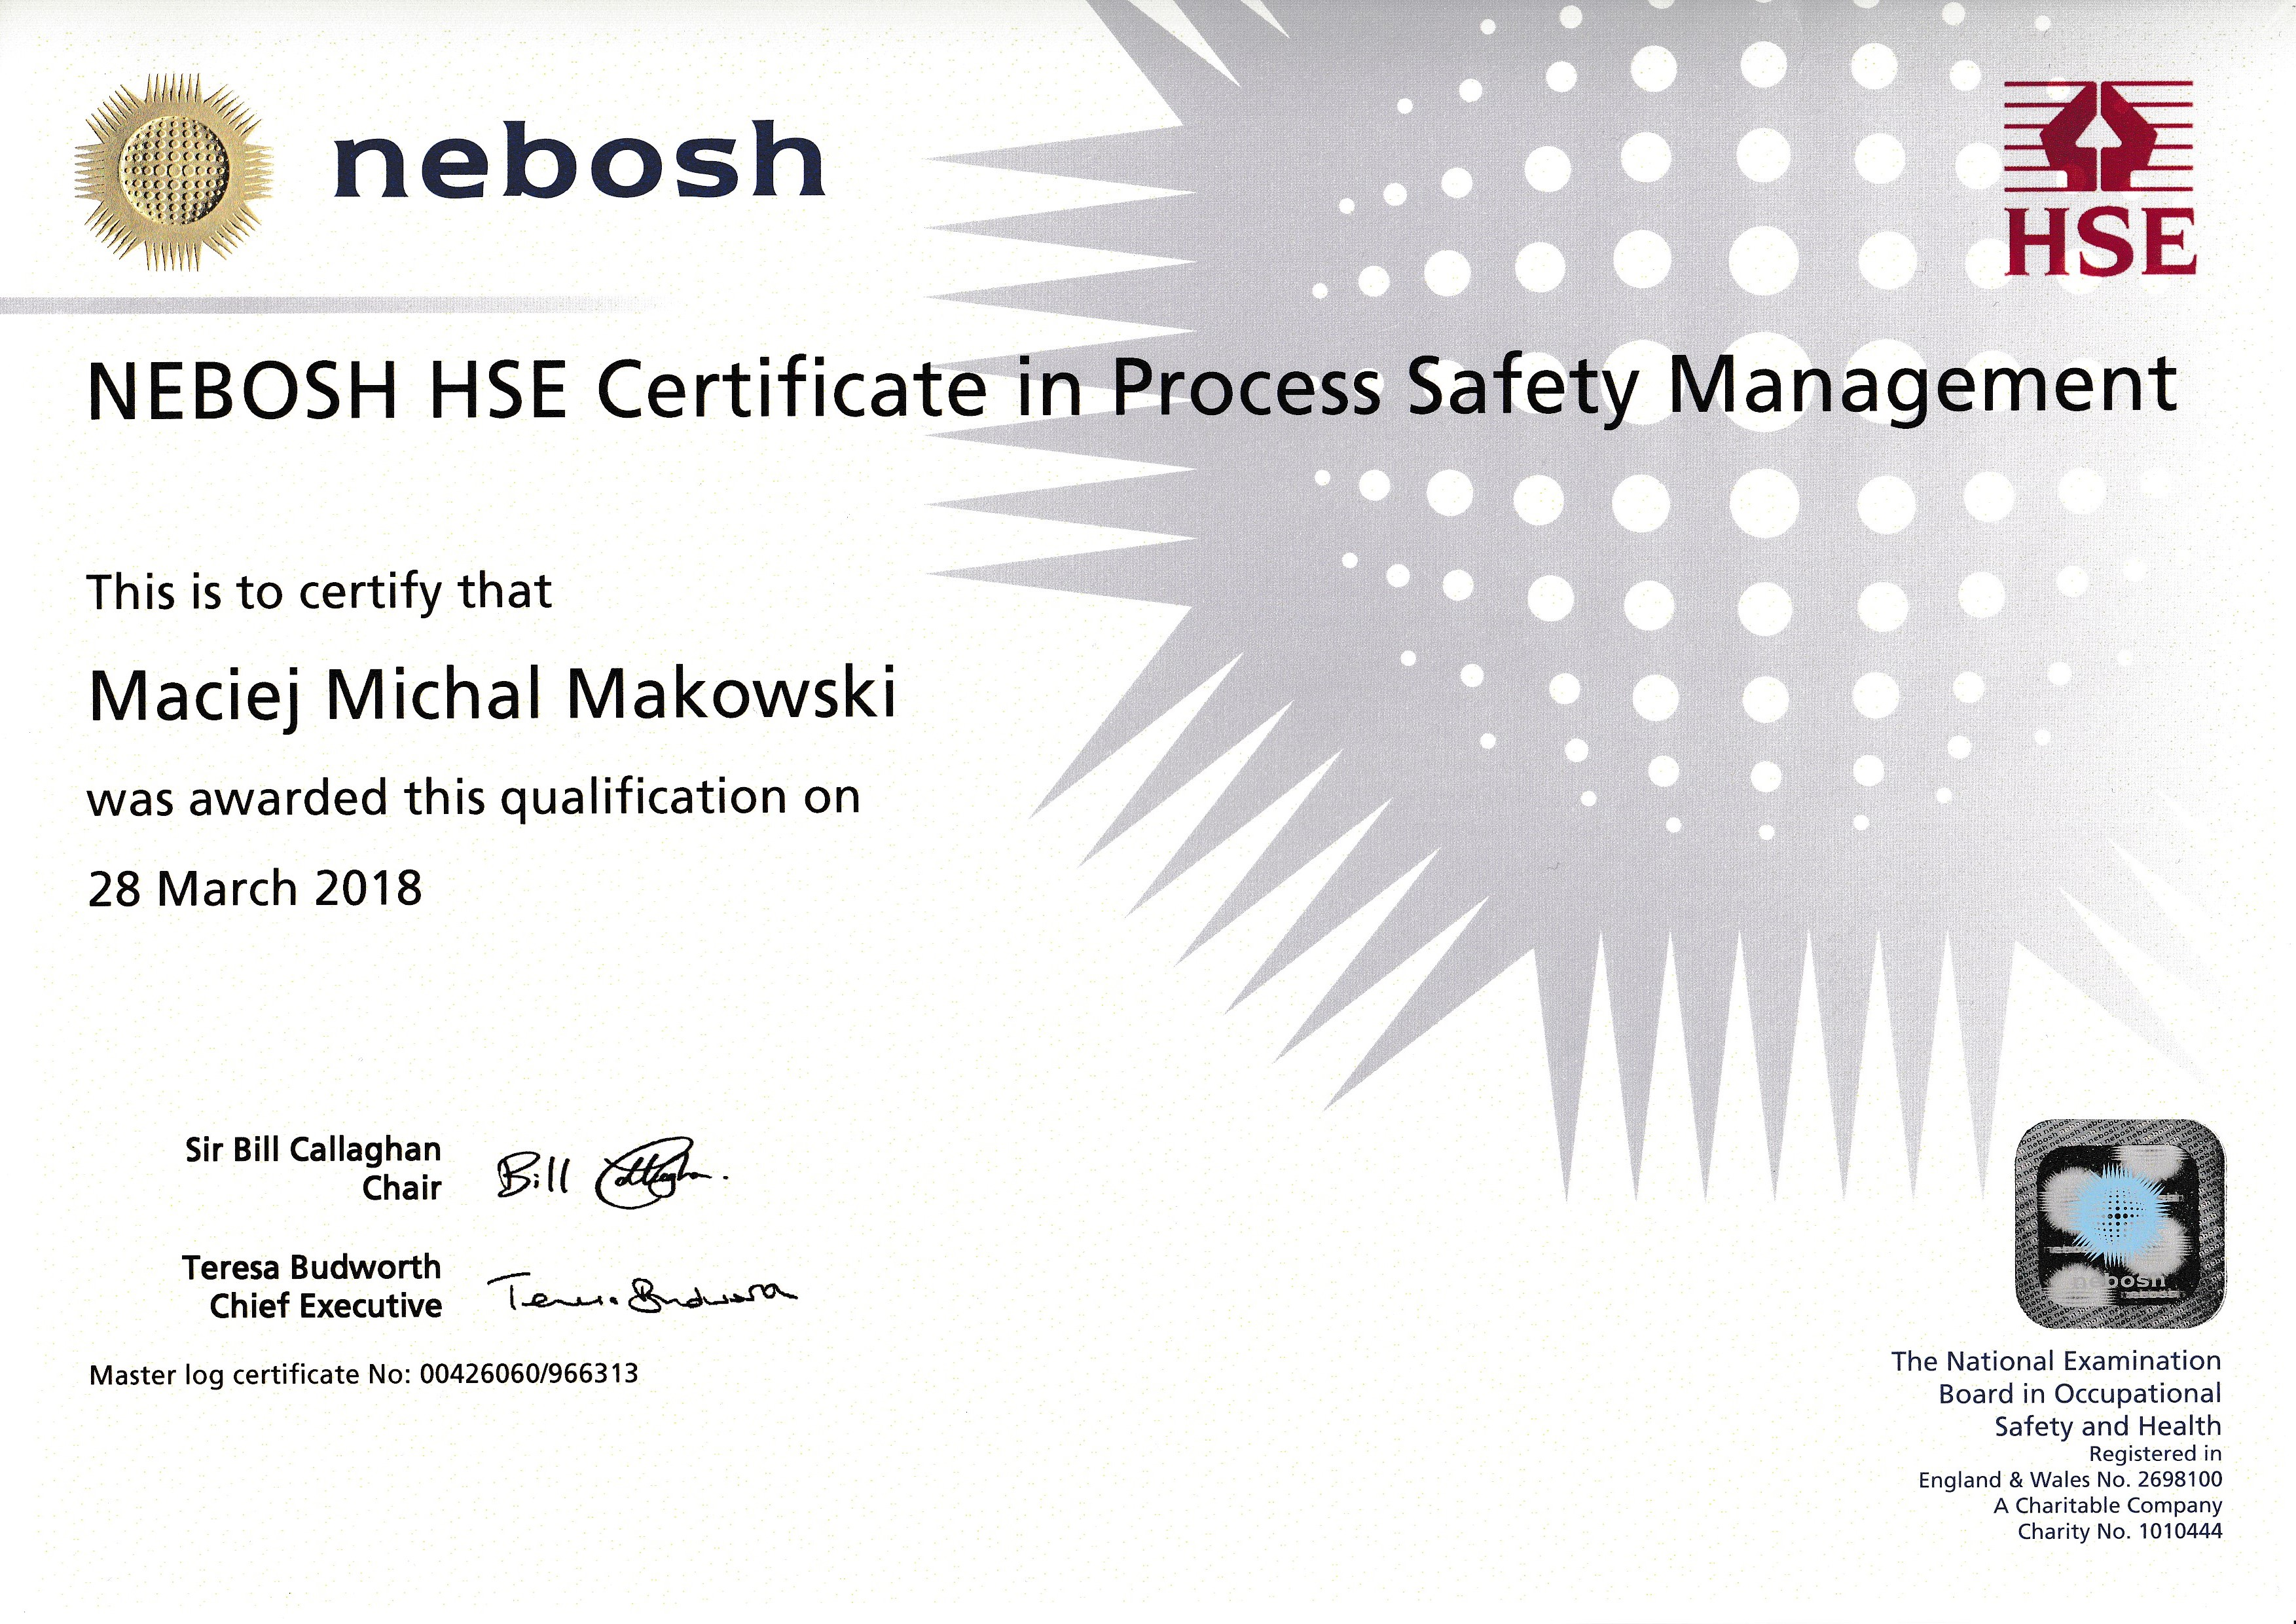 methodology of nebosh diploma unit d The nebosh diploma in occupational health and safety course is suitable for  those wishing to move into health and safety  assessment method a three  hours examination for units a, b & c and a workplace practical assignment (unit  d.